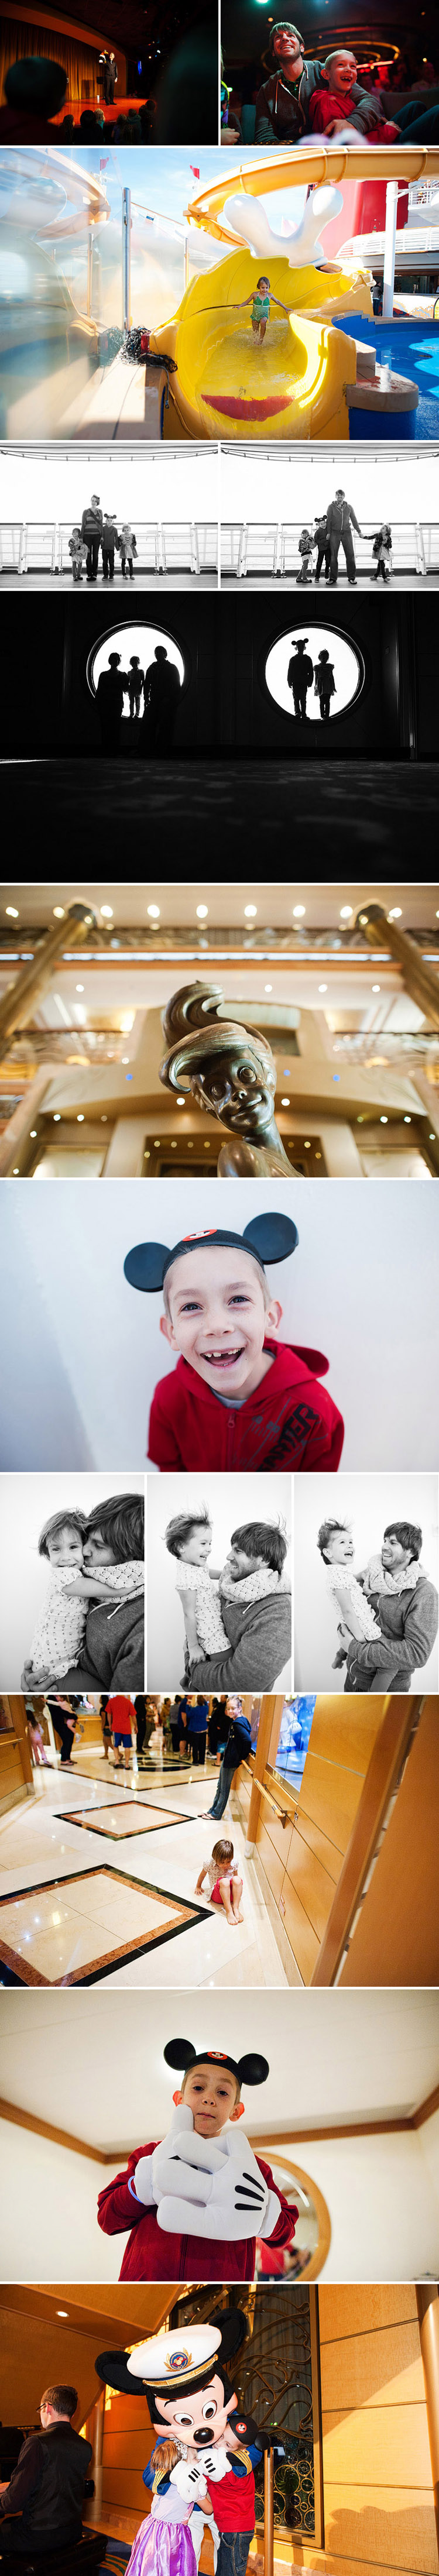 Family portraits on the Disney Wonder cruise ship.